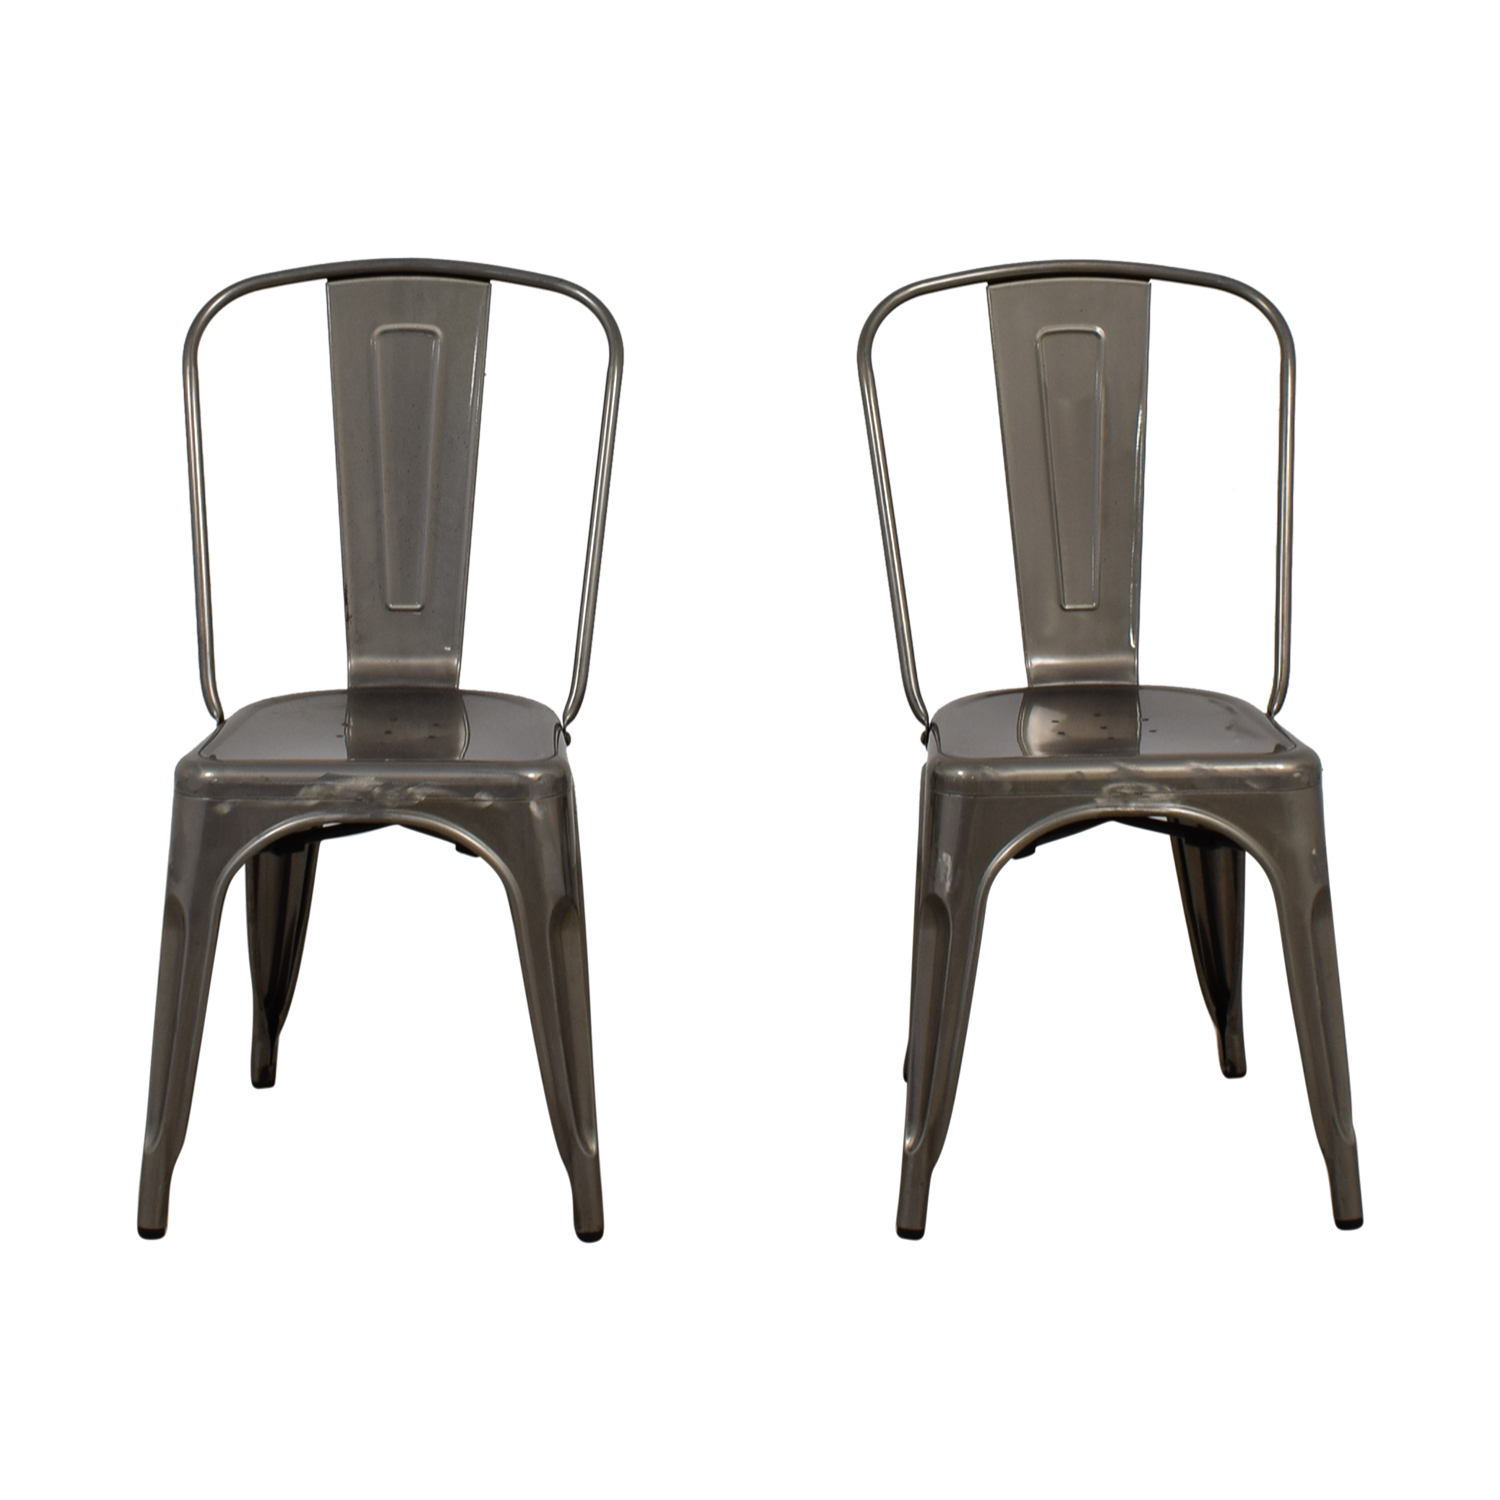 metal bistro chairs drive medical bathroom safety shower tub bench chair 90 off brushed second hand